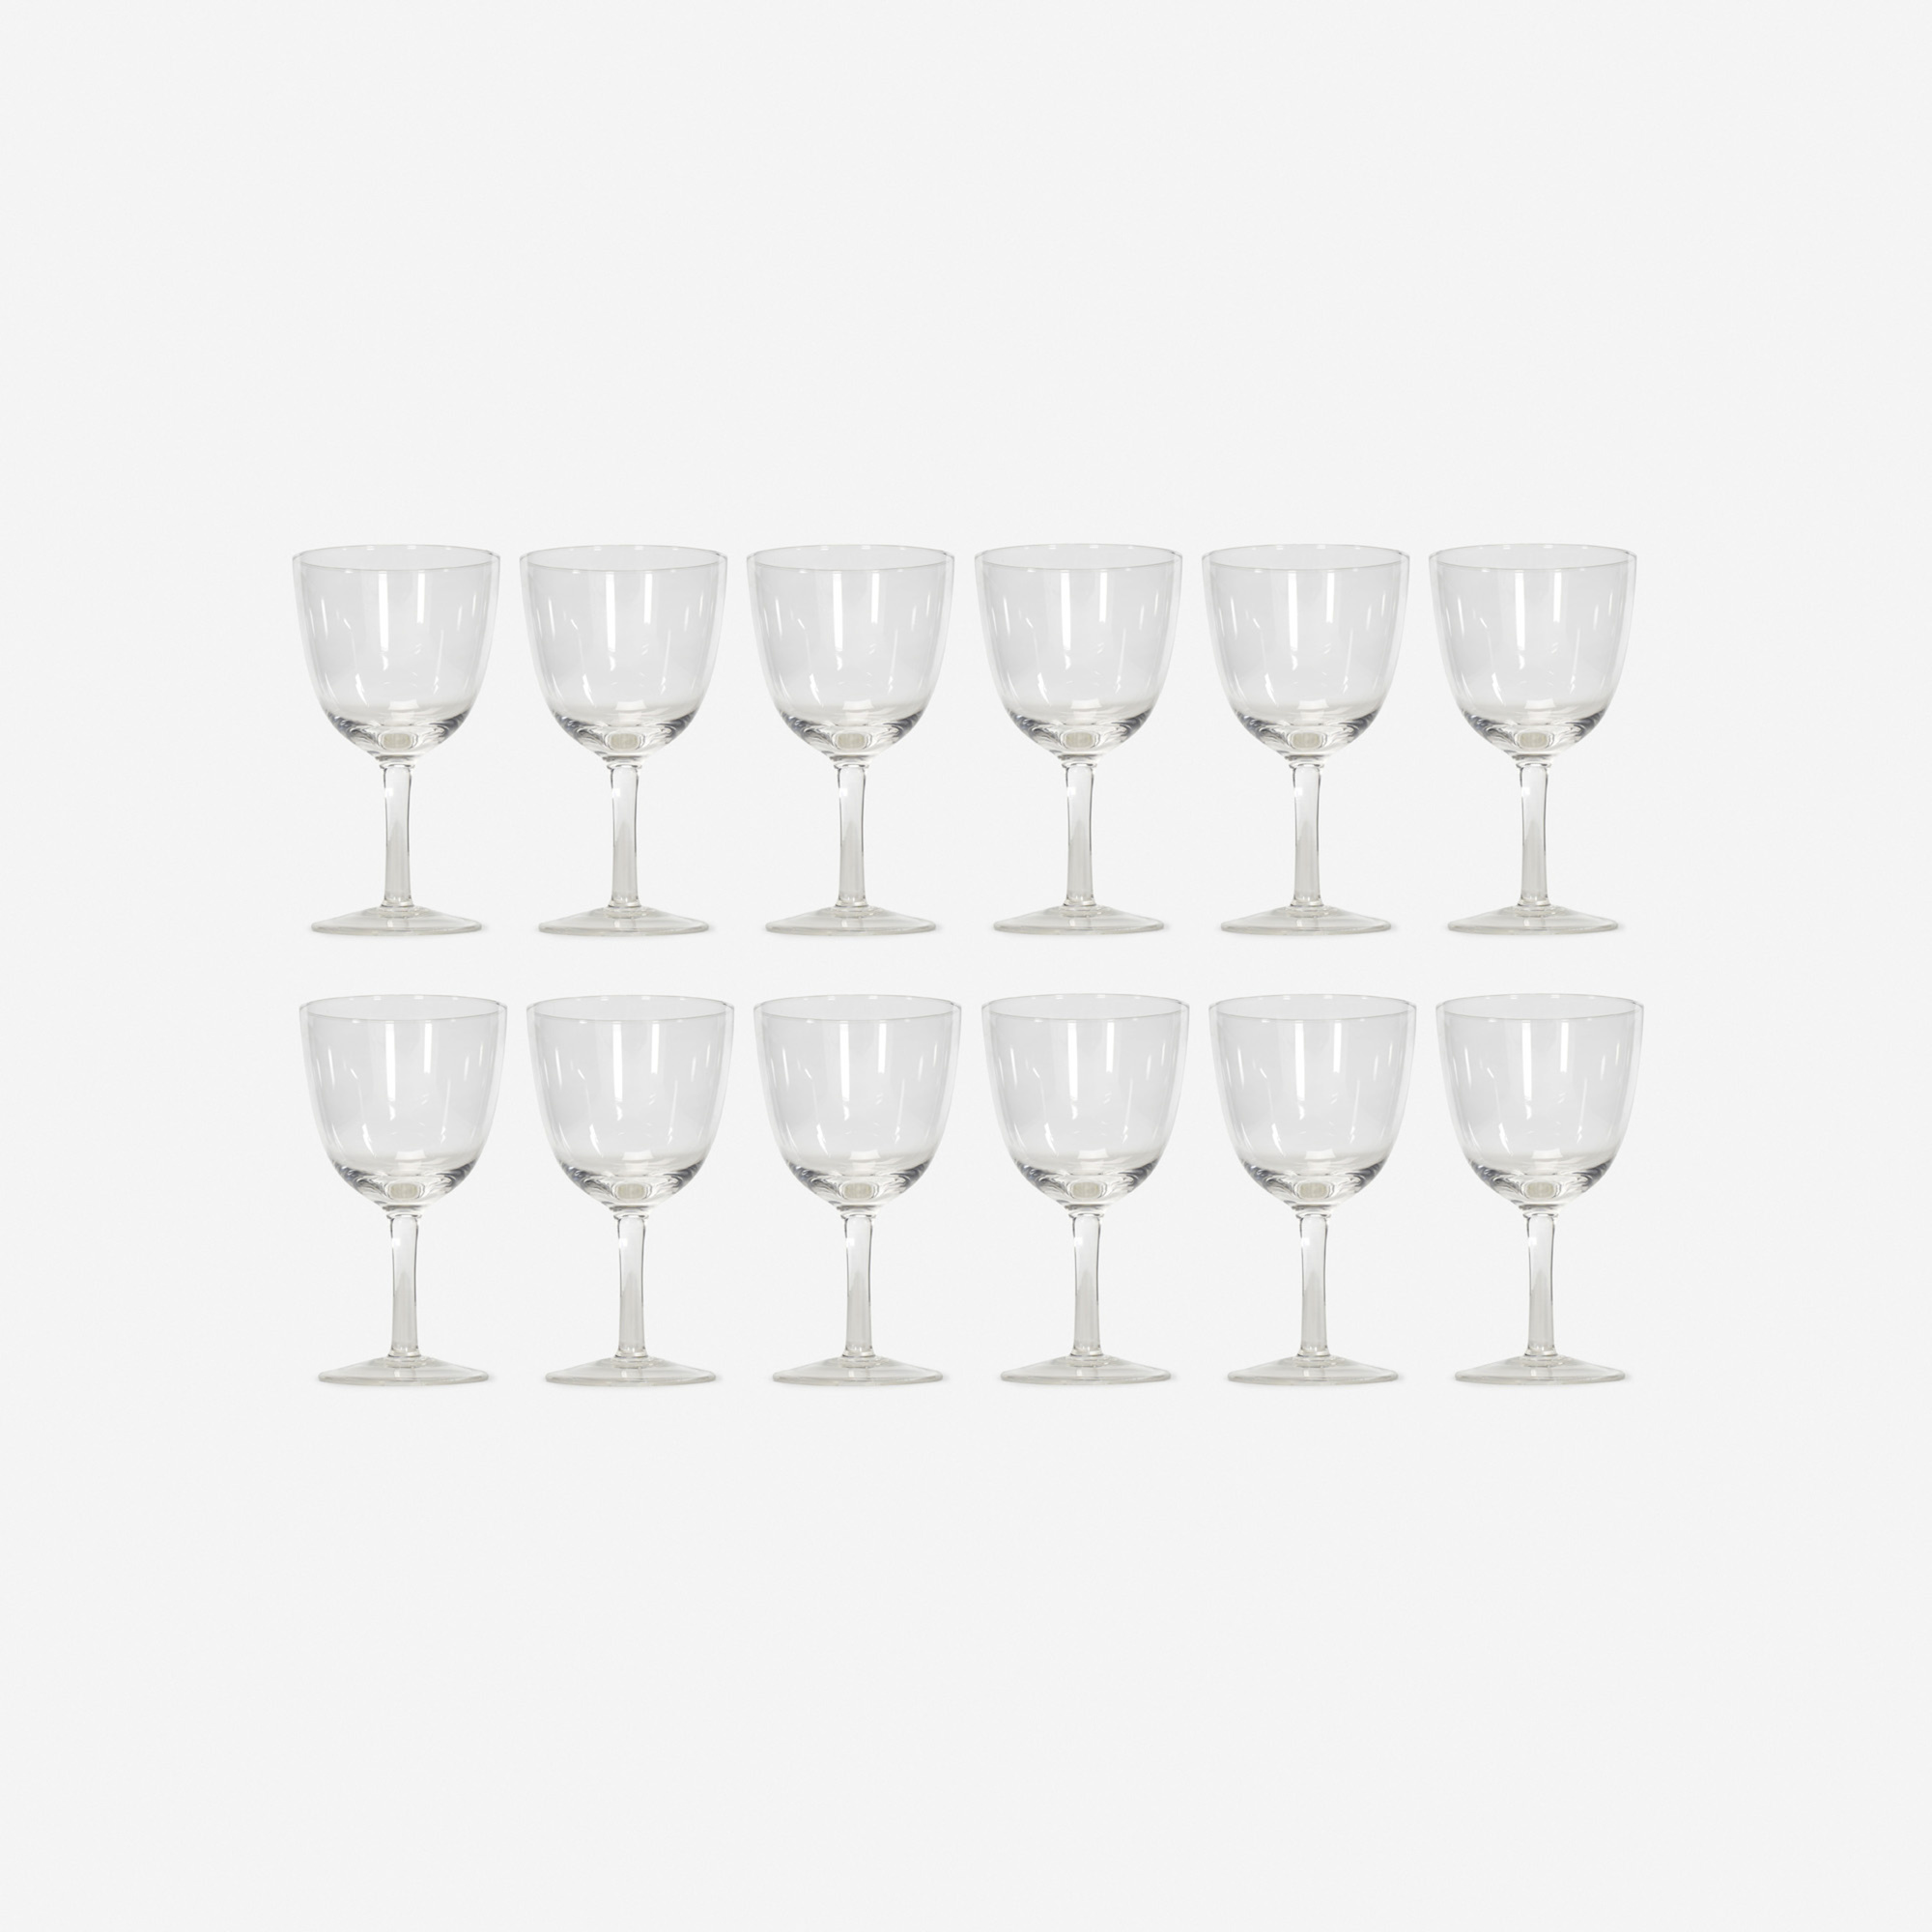 740: Garth and Ada Louise Huxtable / Water glasses from The Four Seasons, set of twelve (1 of 1)